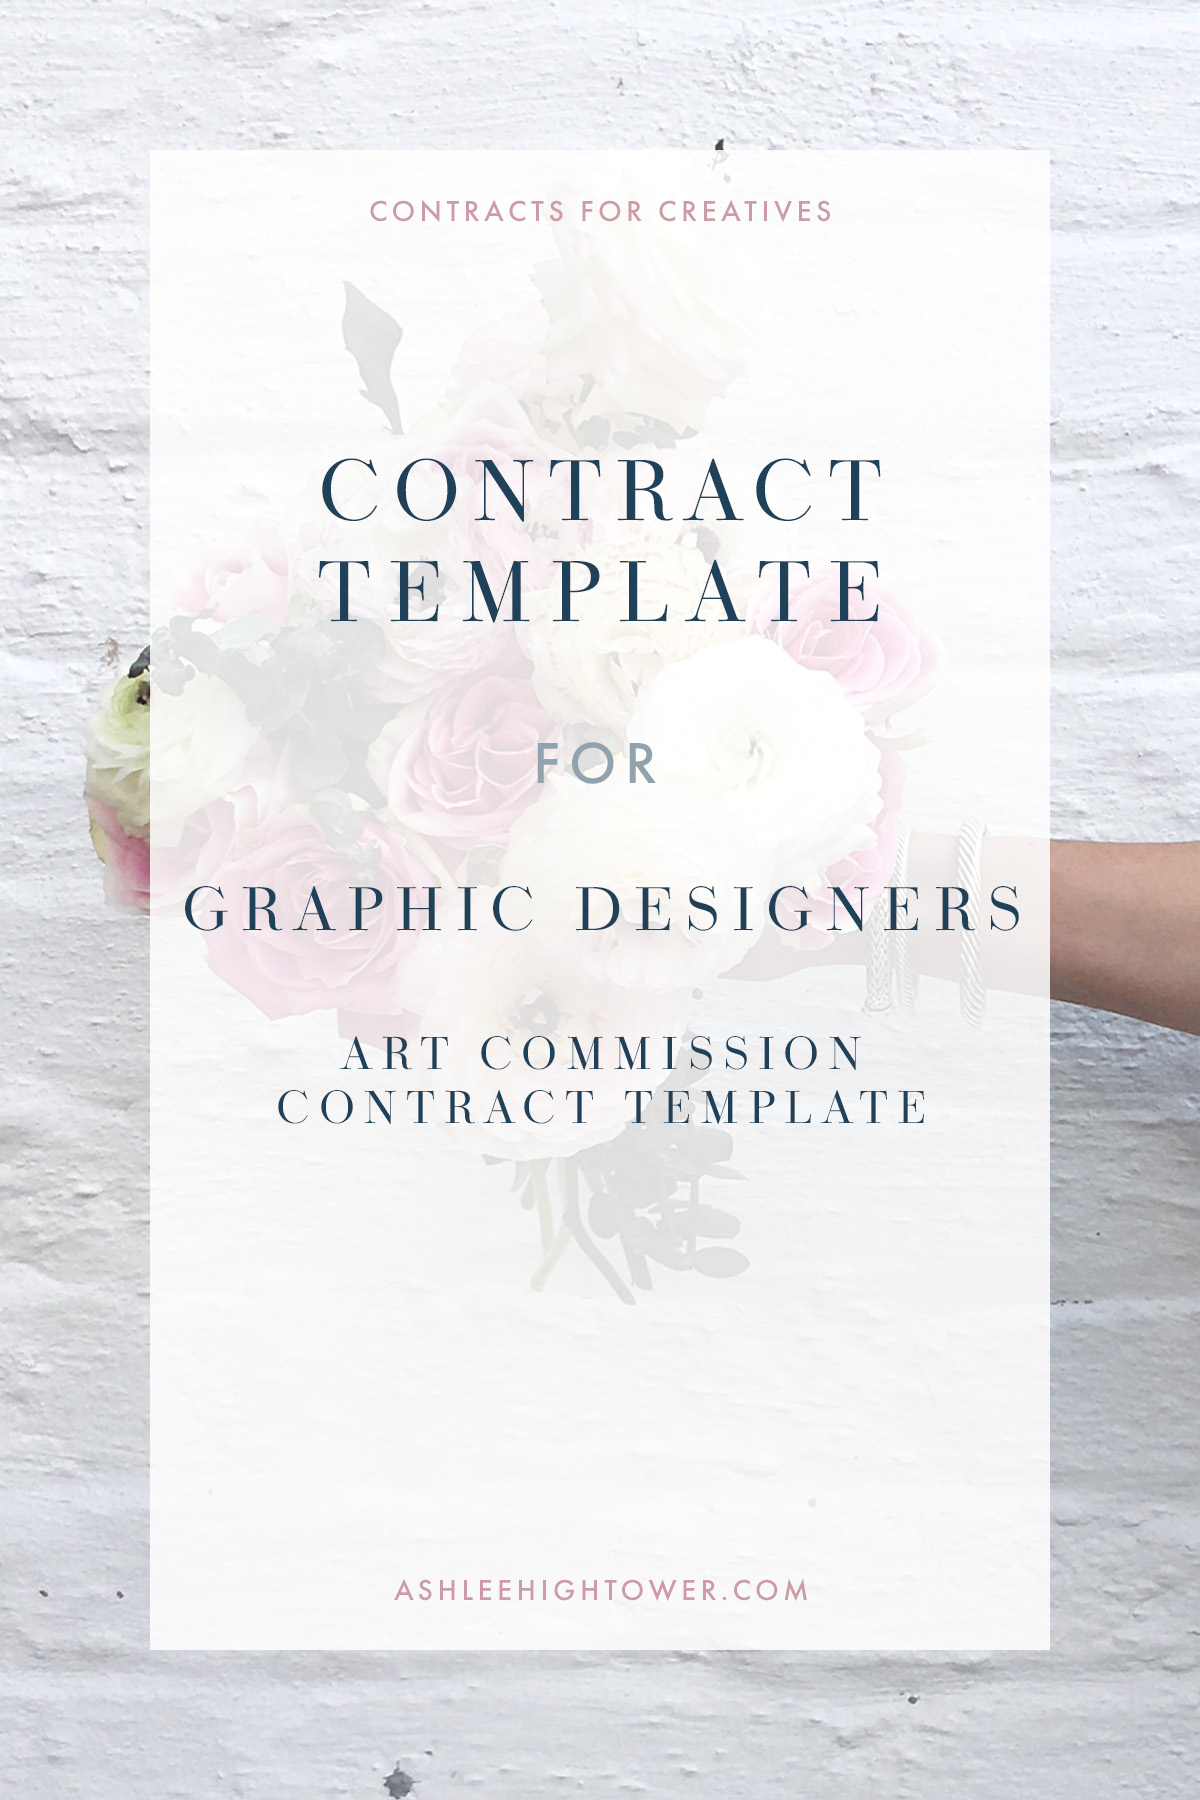 Art Commission Template | Graphic Designer Contract | Ashlee Hightower